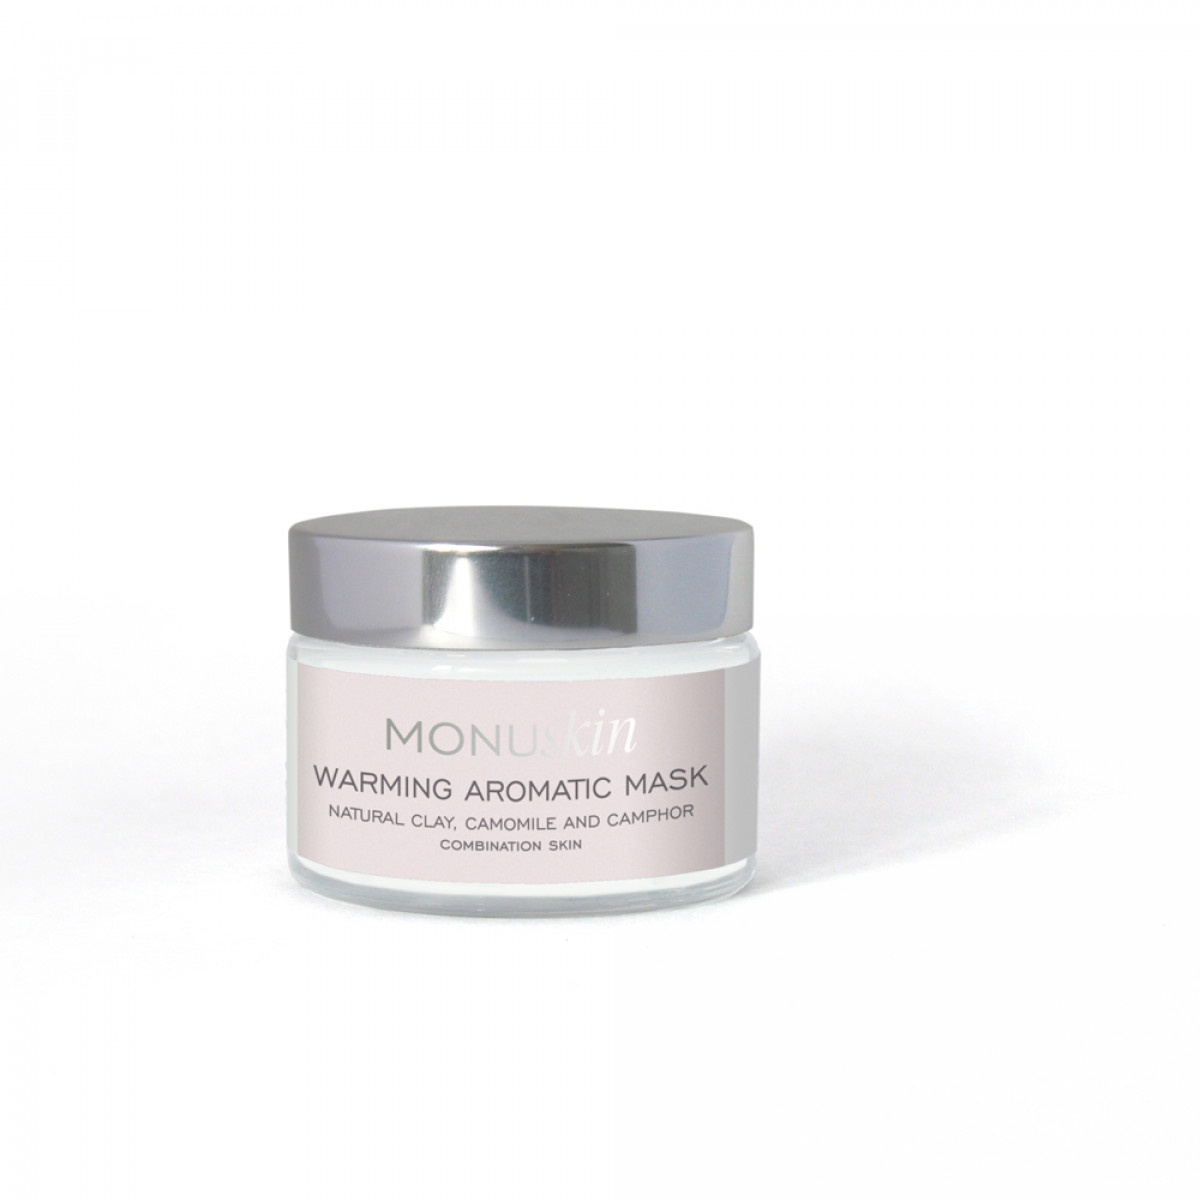 Monu Warming Aromatic Mask